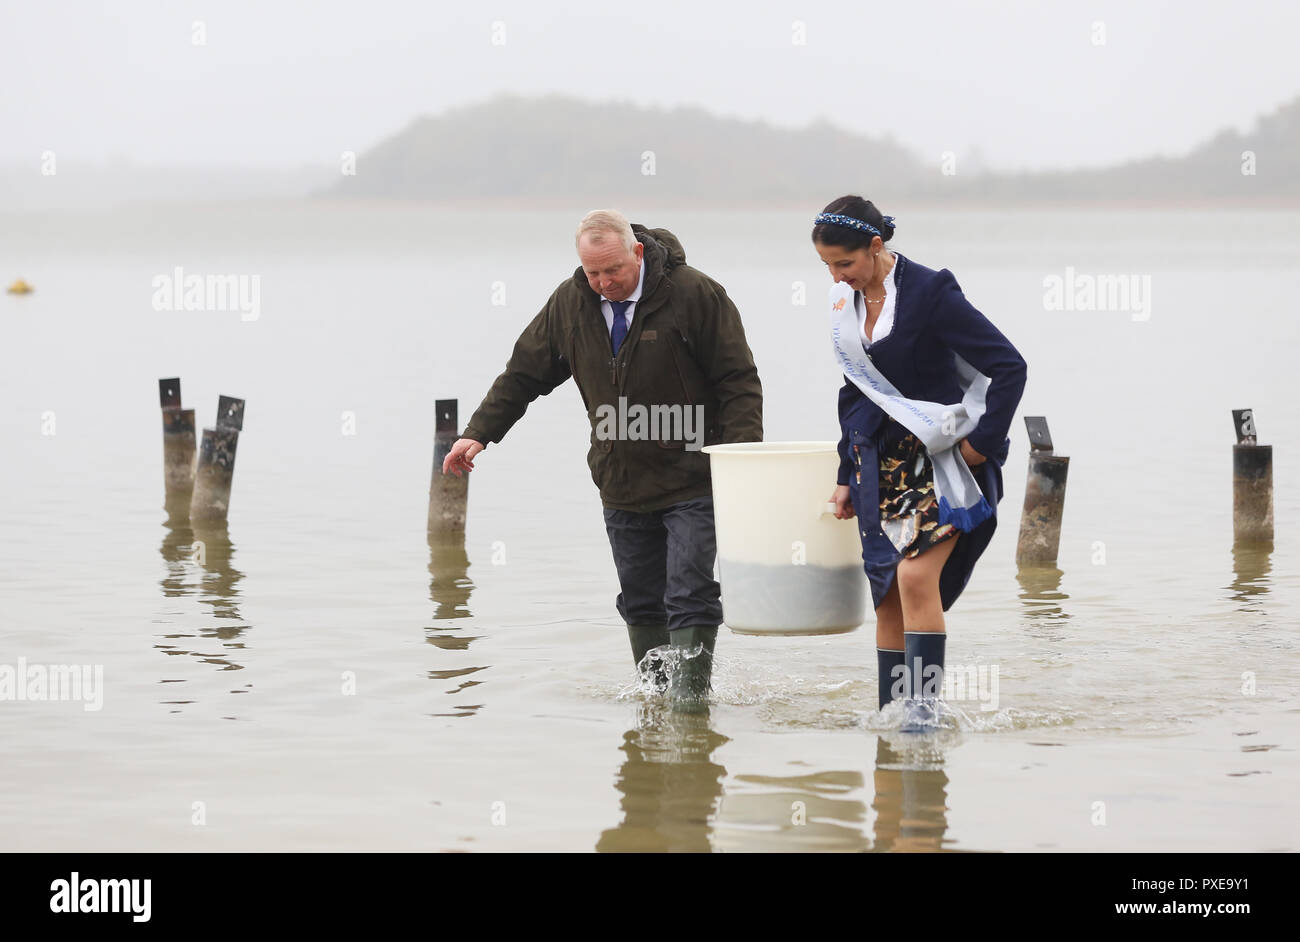 """22 October 2018, Mecklenburg-Western Pomerania, Goldberg: Till Backhaus (SPD), Agriculture Minister of Mecklenburg-Western Pomerania, and Jeannette Dehmel, 1st Fisher Queen of Mecklenburg-Western Pomerania, are releasing pre-stretched (fed) young eels in Lake Goldberg. For 25 years, the """"Landesanglerverband MV"""" has occupied eels worth around 100,000 euros annually. The campaign """"Save the European Eel"""" should contribute to the conservation of eels in Mecklenburg-Vorpommern. Photo: Danny Gohlke/dpa-Zentralbild/dpa Stock Photo"""